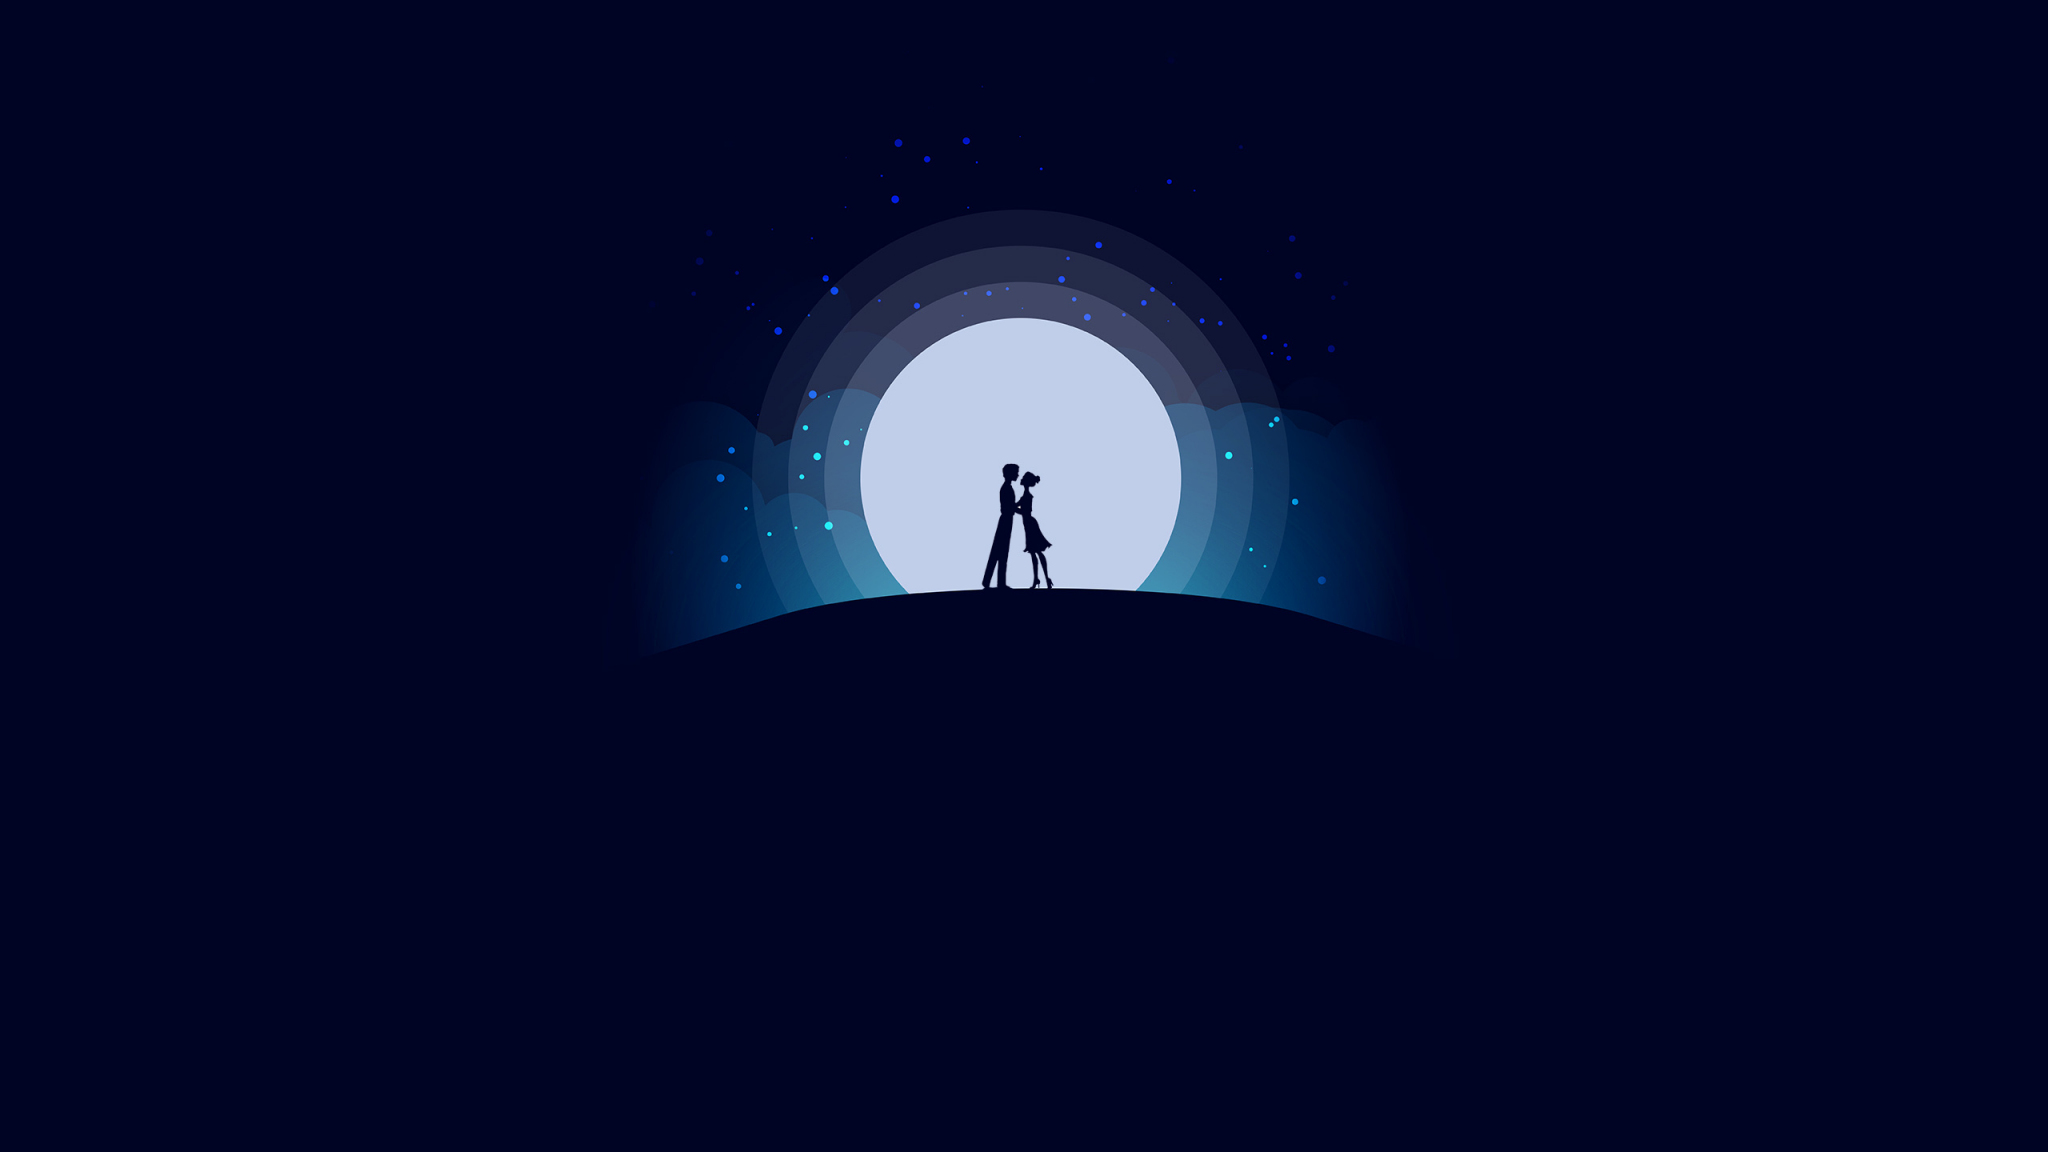 Love Couple With Moon Hd Wallpaper For Mobile: Download 2048x1152 Wallpaper Couple, Love, Moon, Night